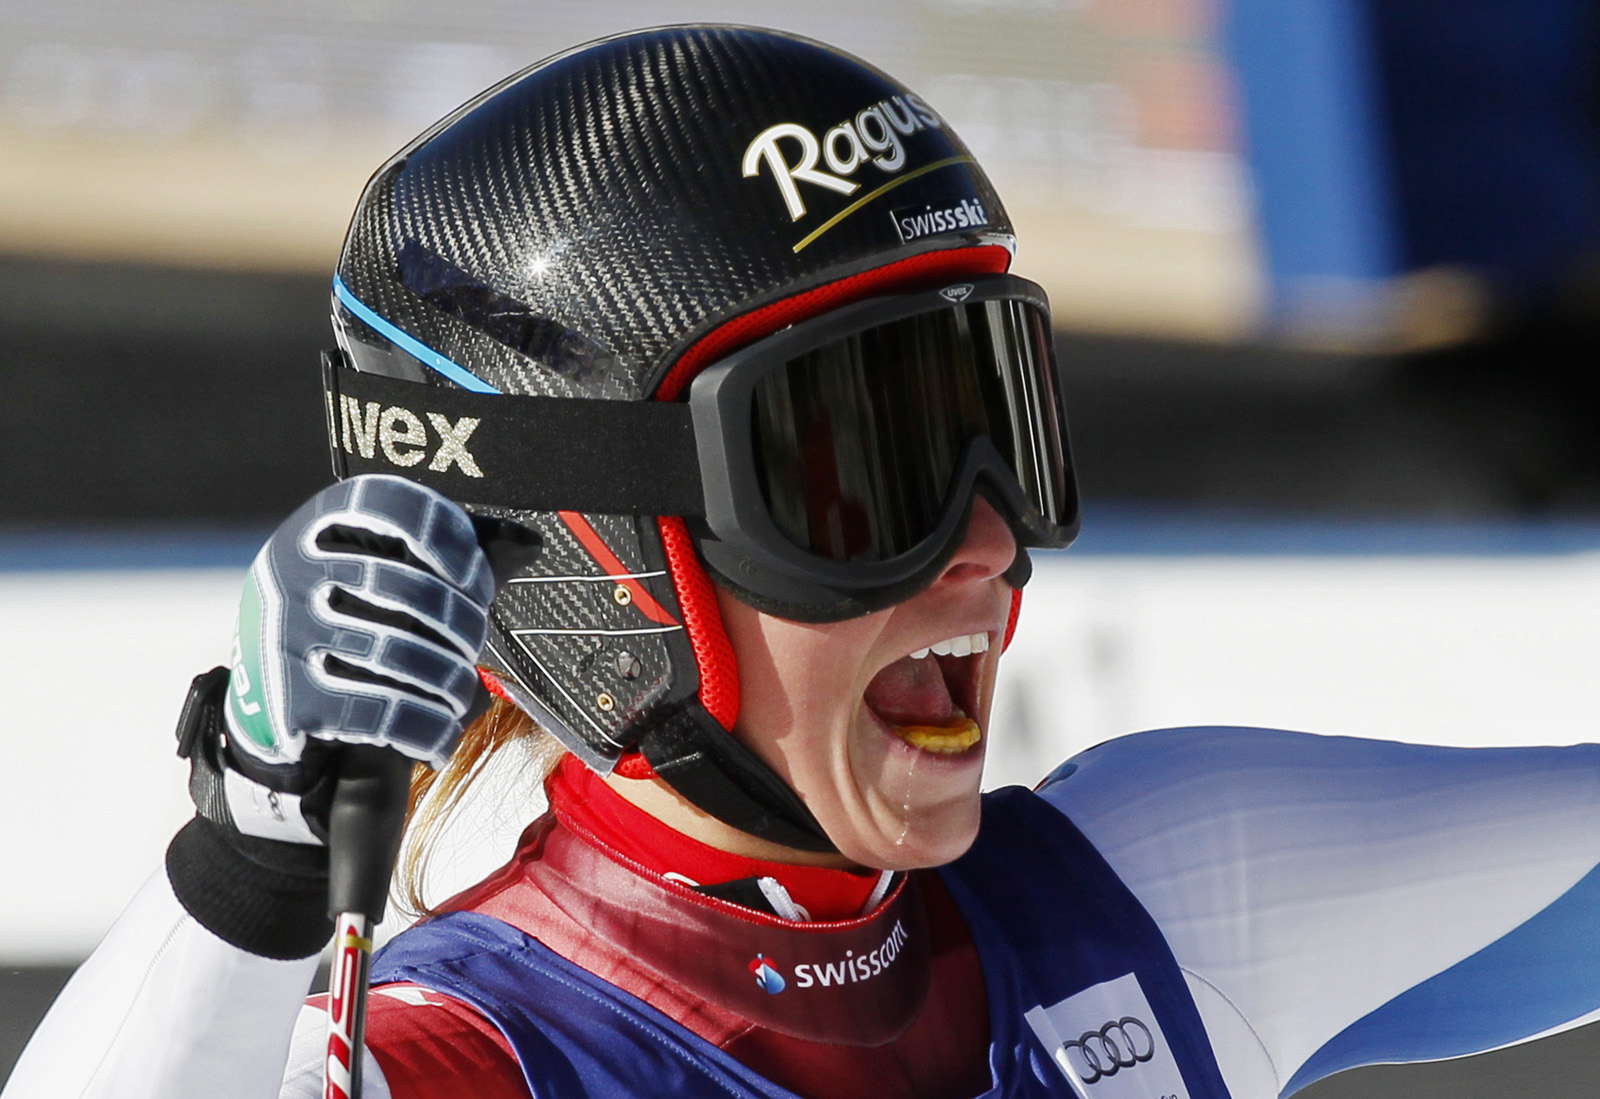 Lara Gut of Switzerland celebrates in the finish area after winning the women's World Cup Super-G ski race in Beaver Creek